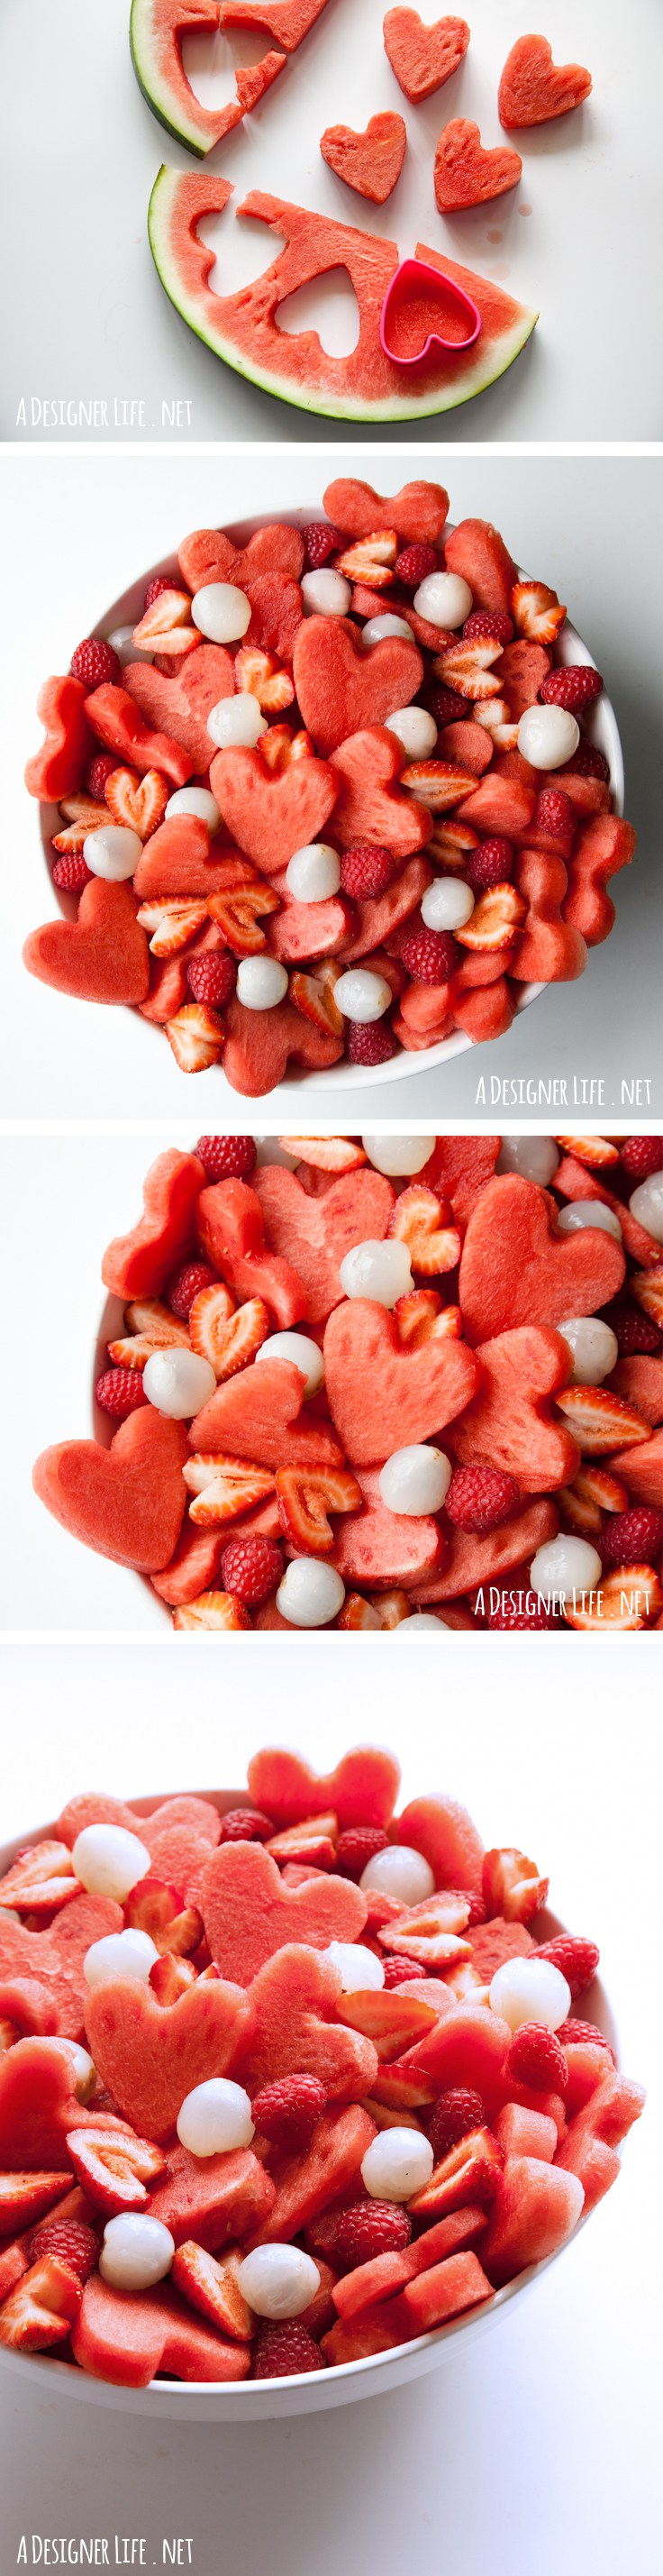 Watermelon Heart Fruit Salad